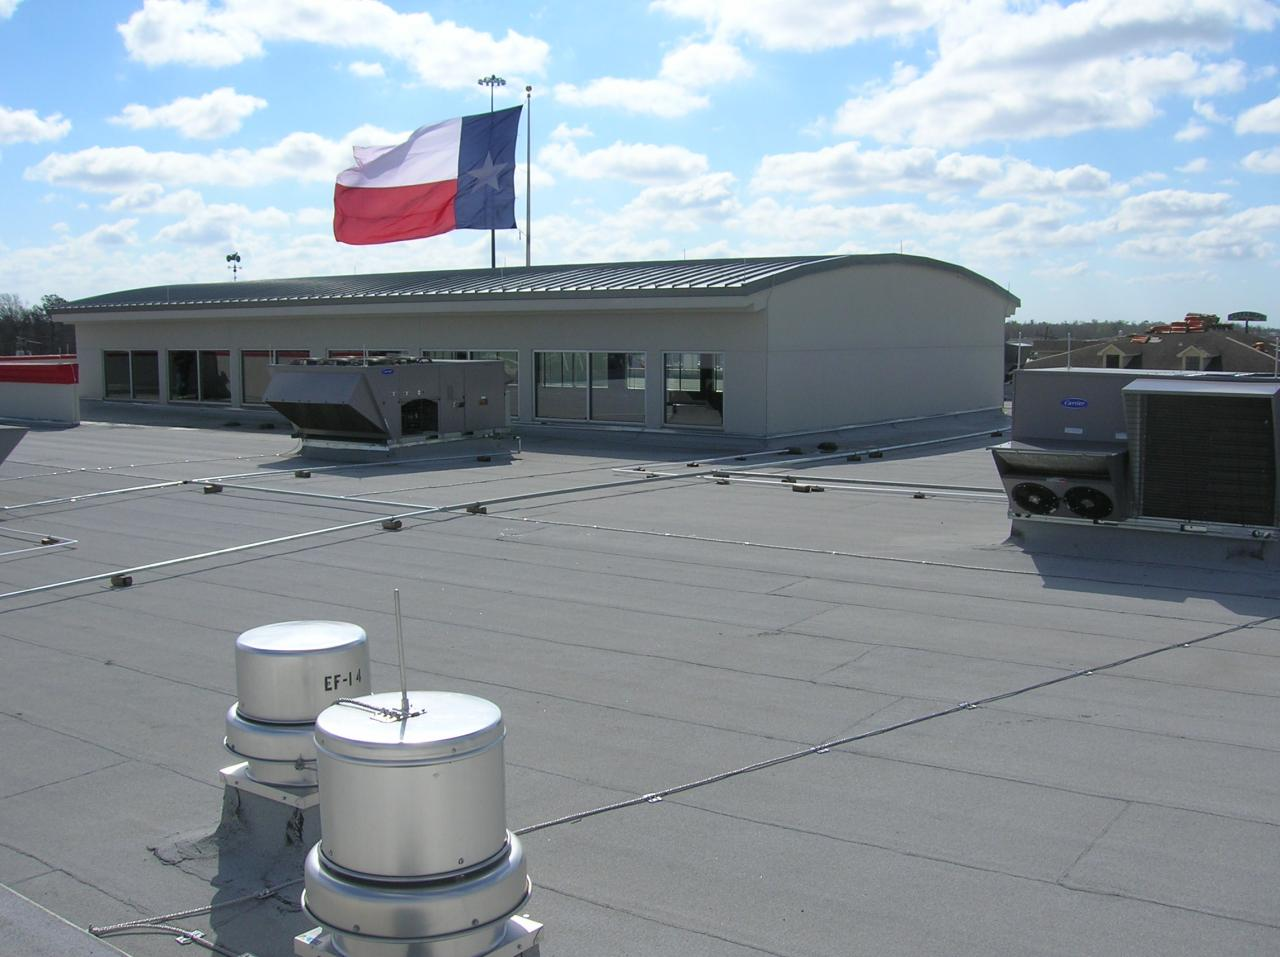 Perkins roofing company inc project photos for Sander s motor co beaumont tx